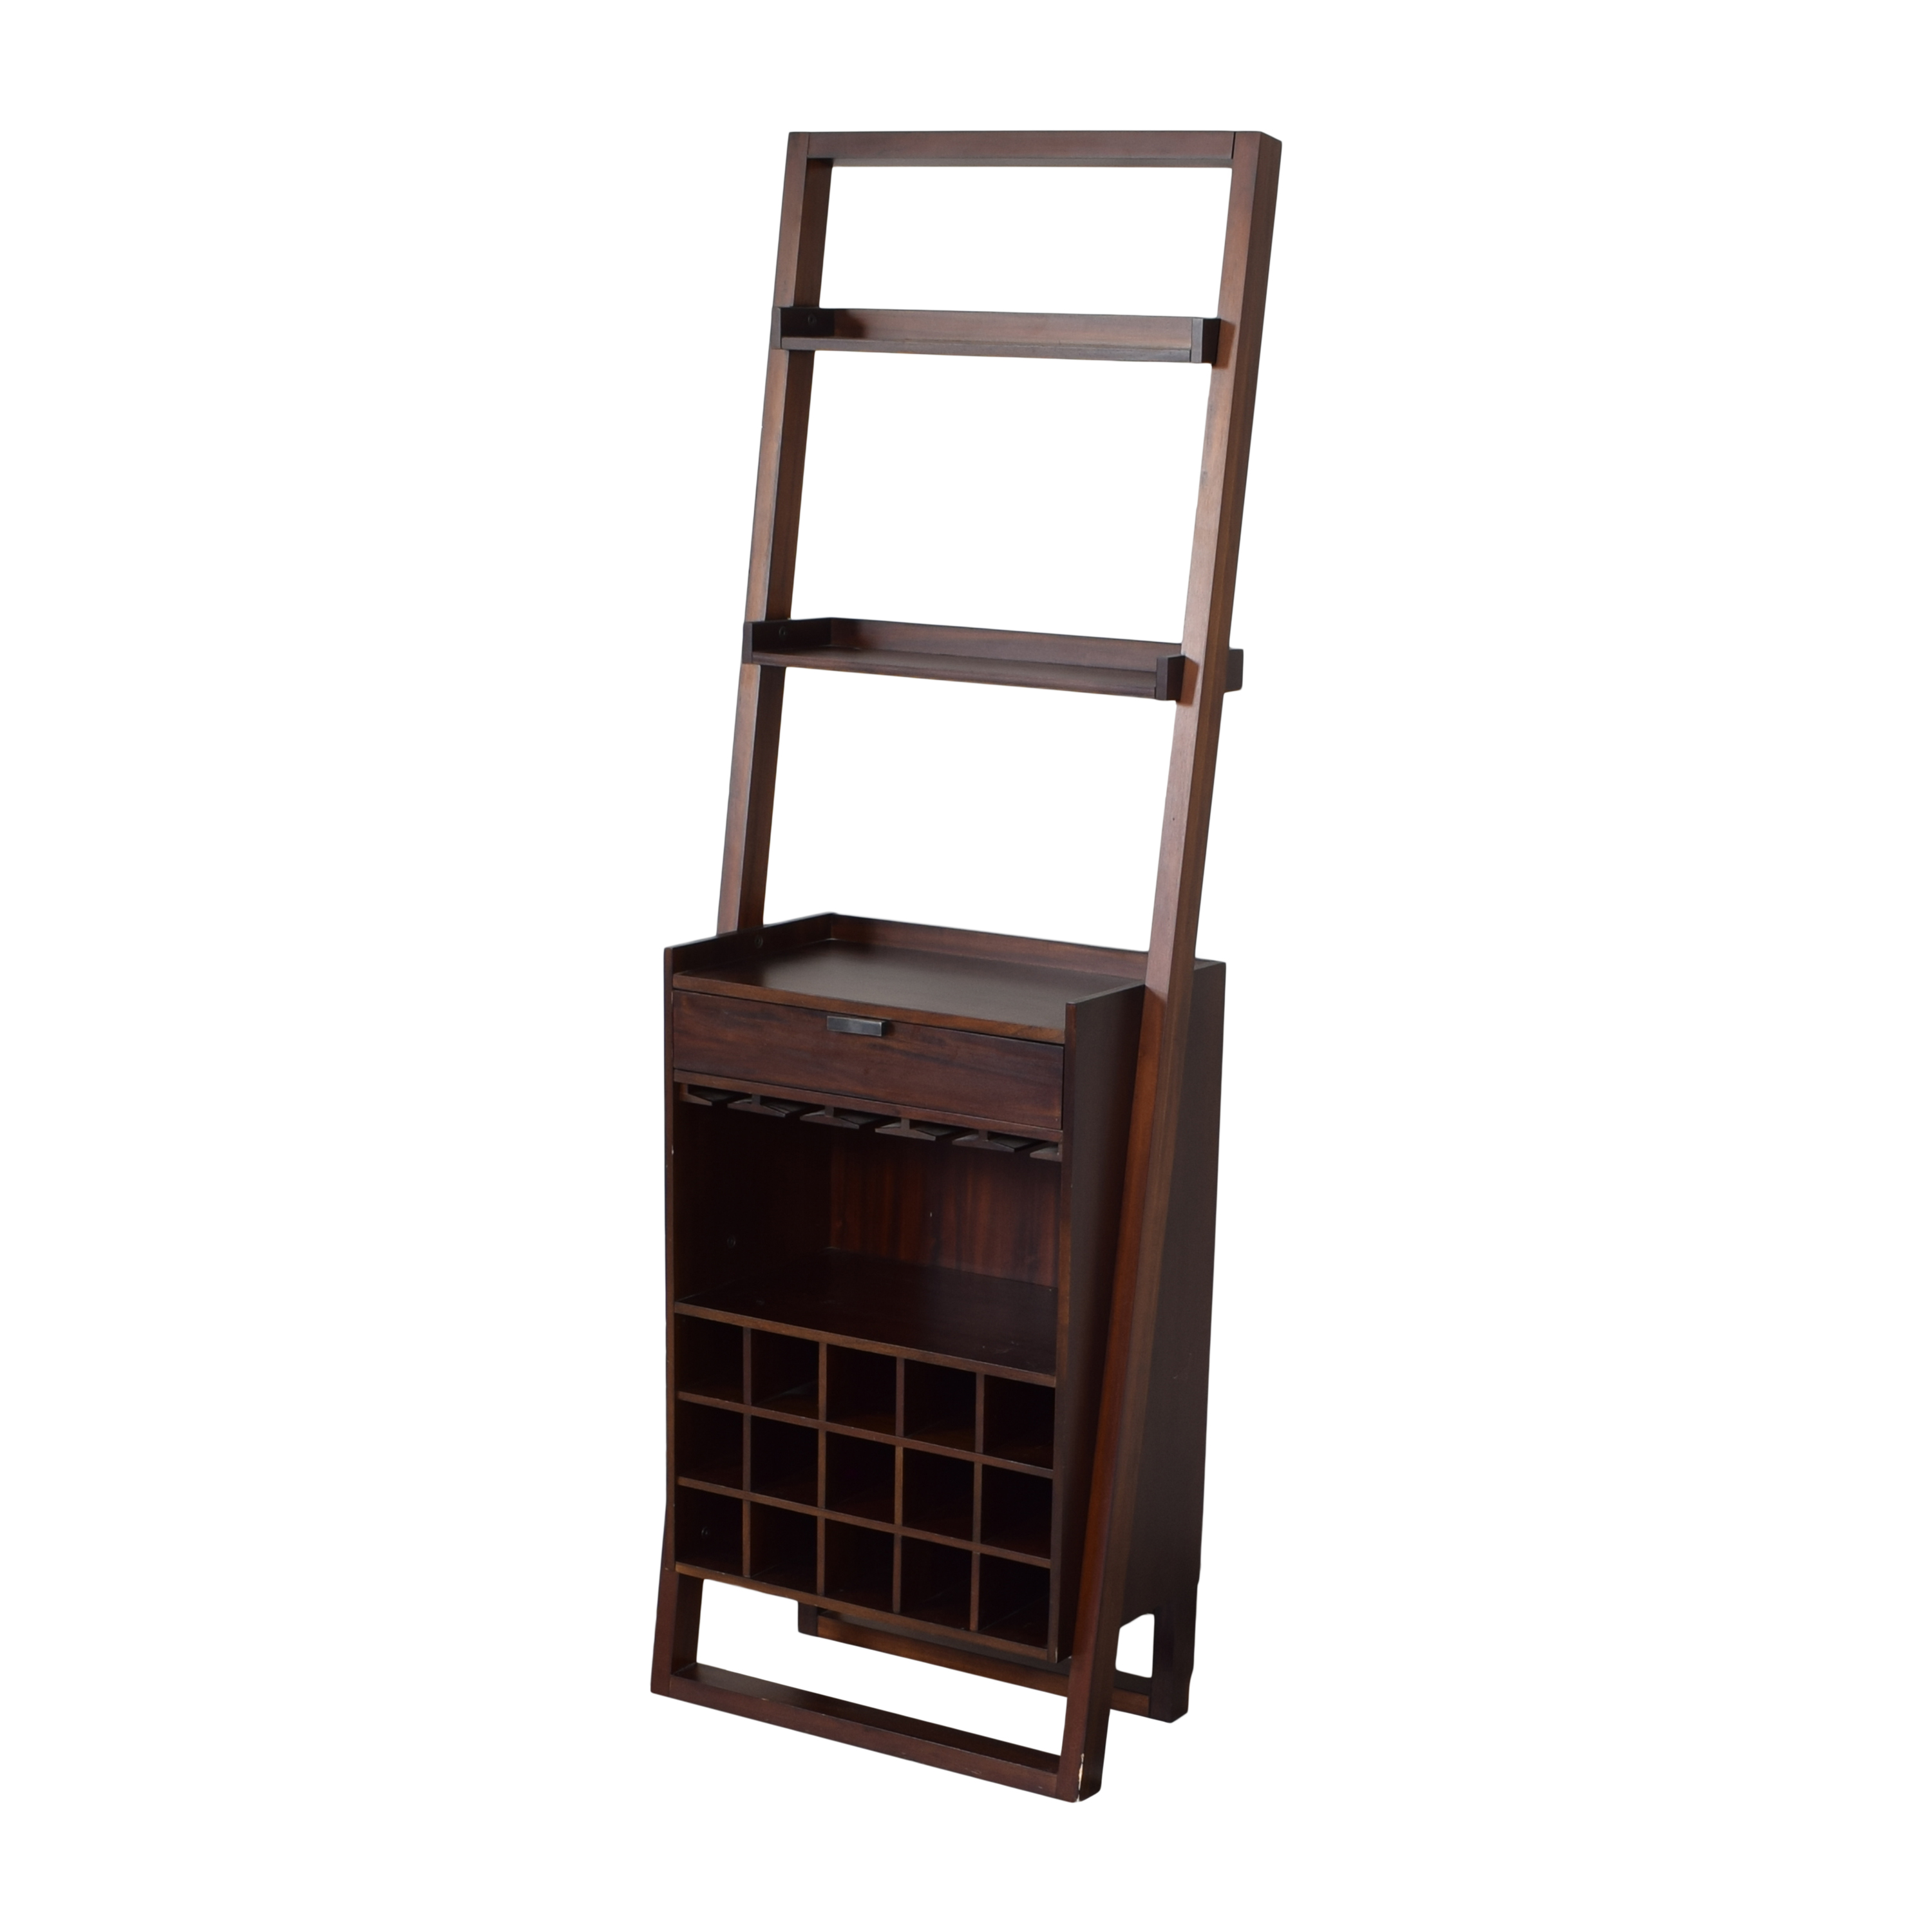 Crate & Barrel Crate and Barrel Sloane Leaning Wine Bar for sale